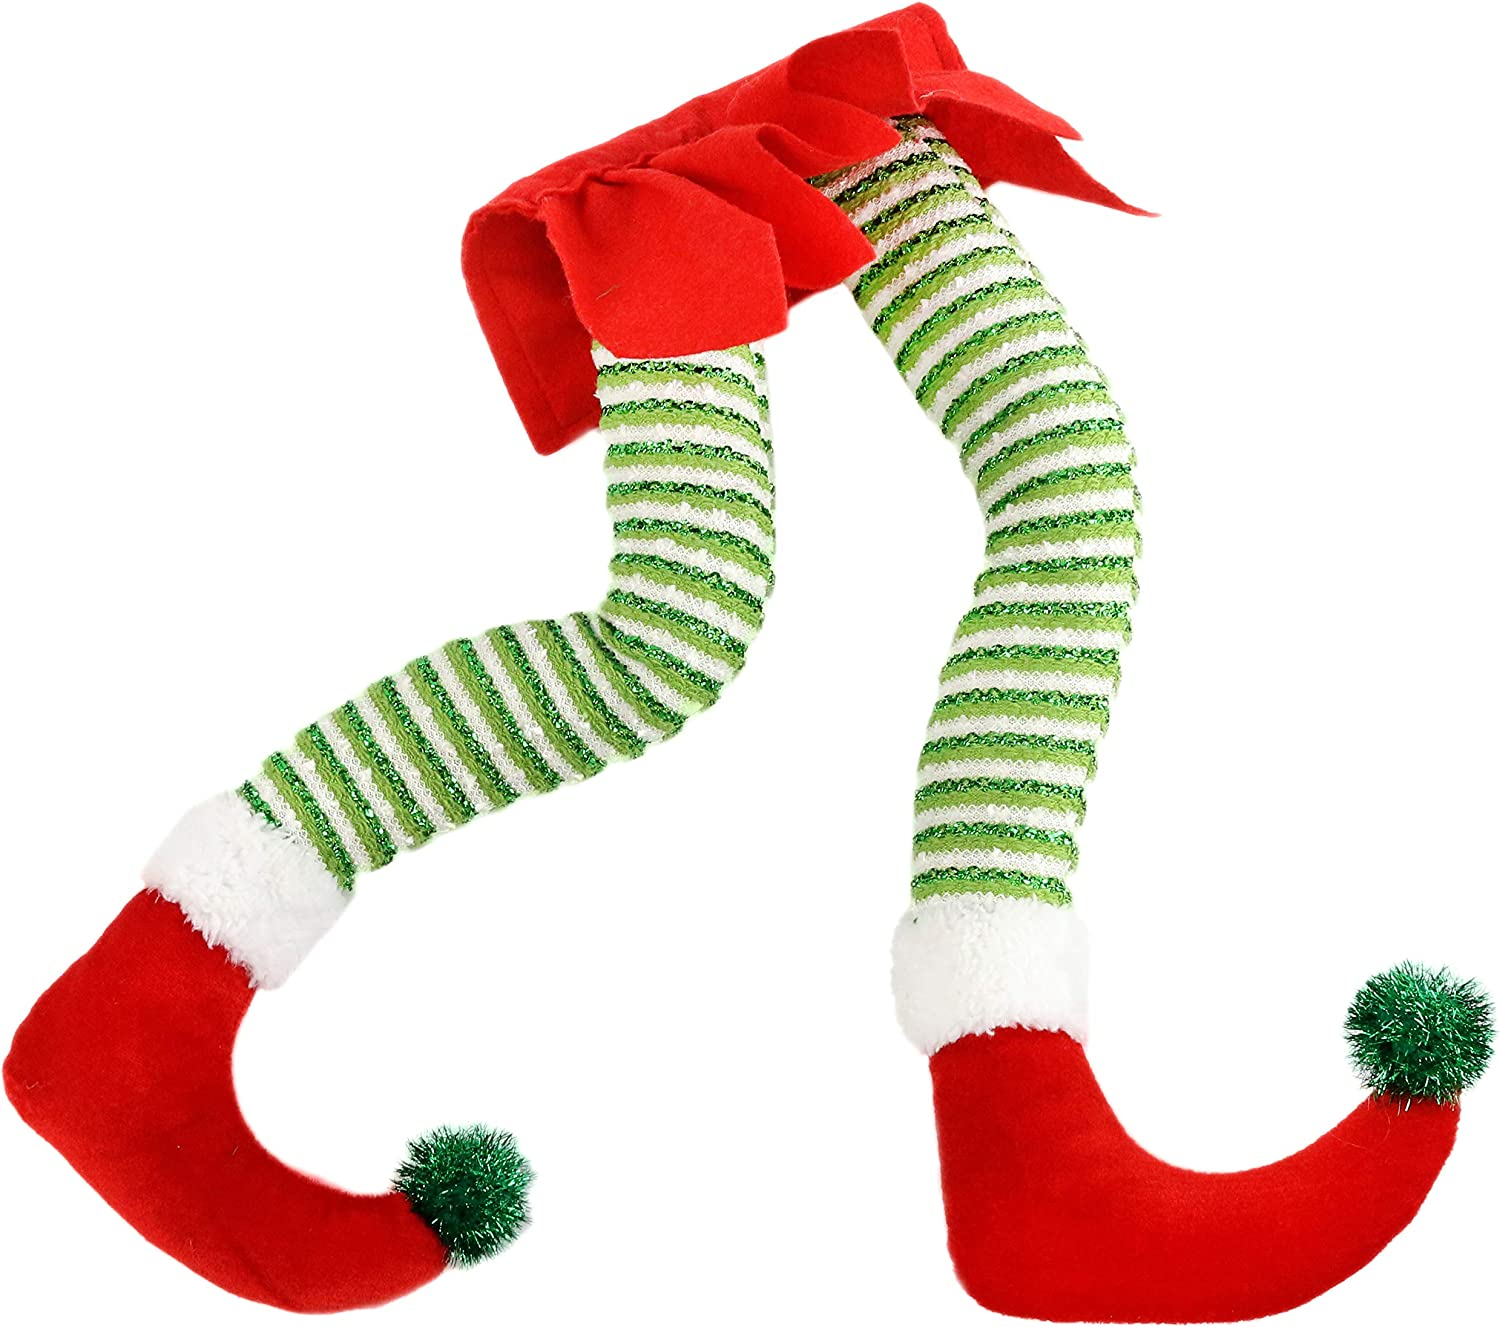 Athoinsu 16'' Elf Legs Christmas Tree Decorations Glitter Stuffed Leg Xmas Holiday Home Party Ornaments Gifts for Kids Toddlers Family(Red)